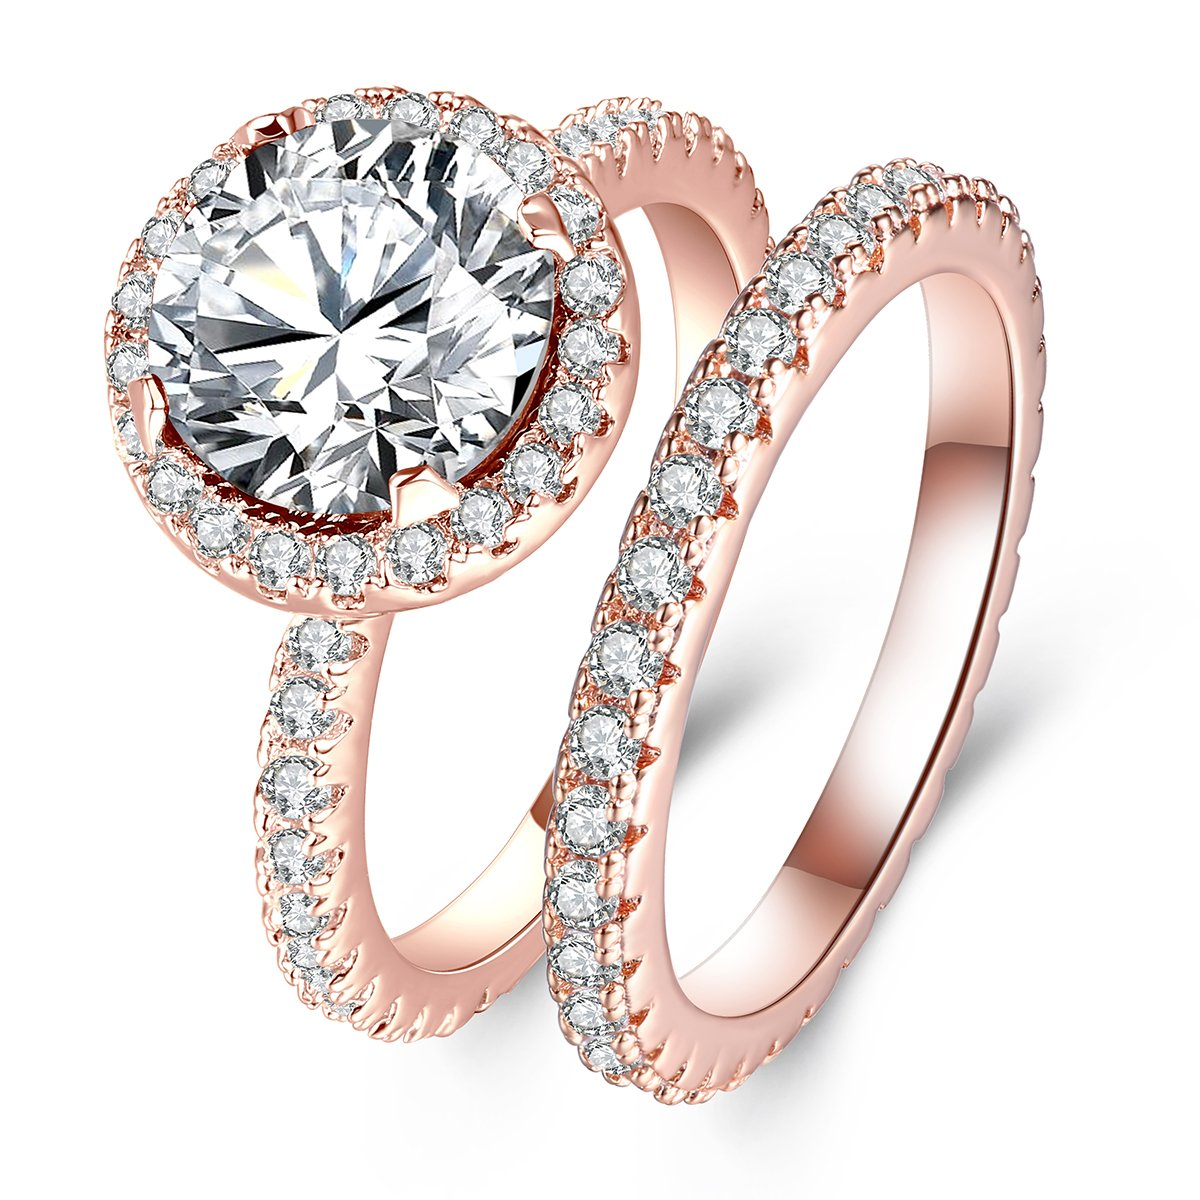 3 Carat Round CZ Solitaire 2 Pieces Ring Set for Women, Halo Style Rose Gold Plated Size 9 by Shengtai (Image #1)